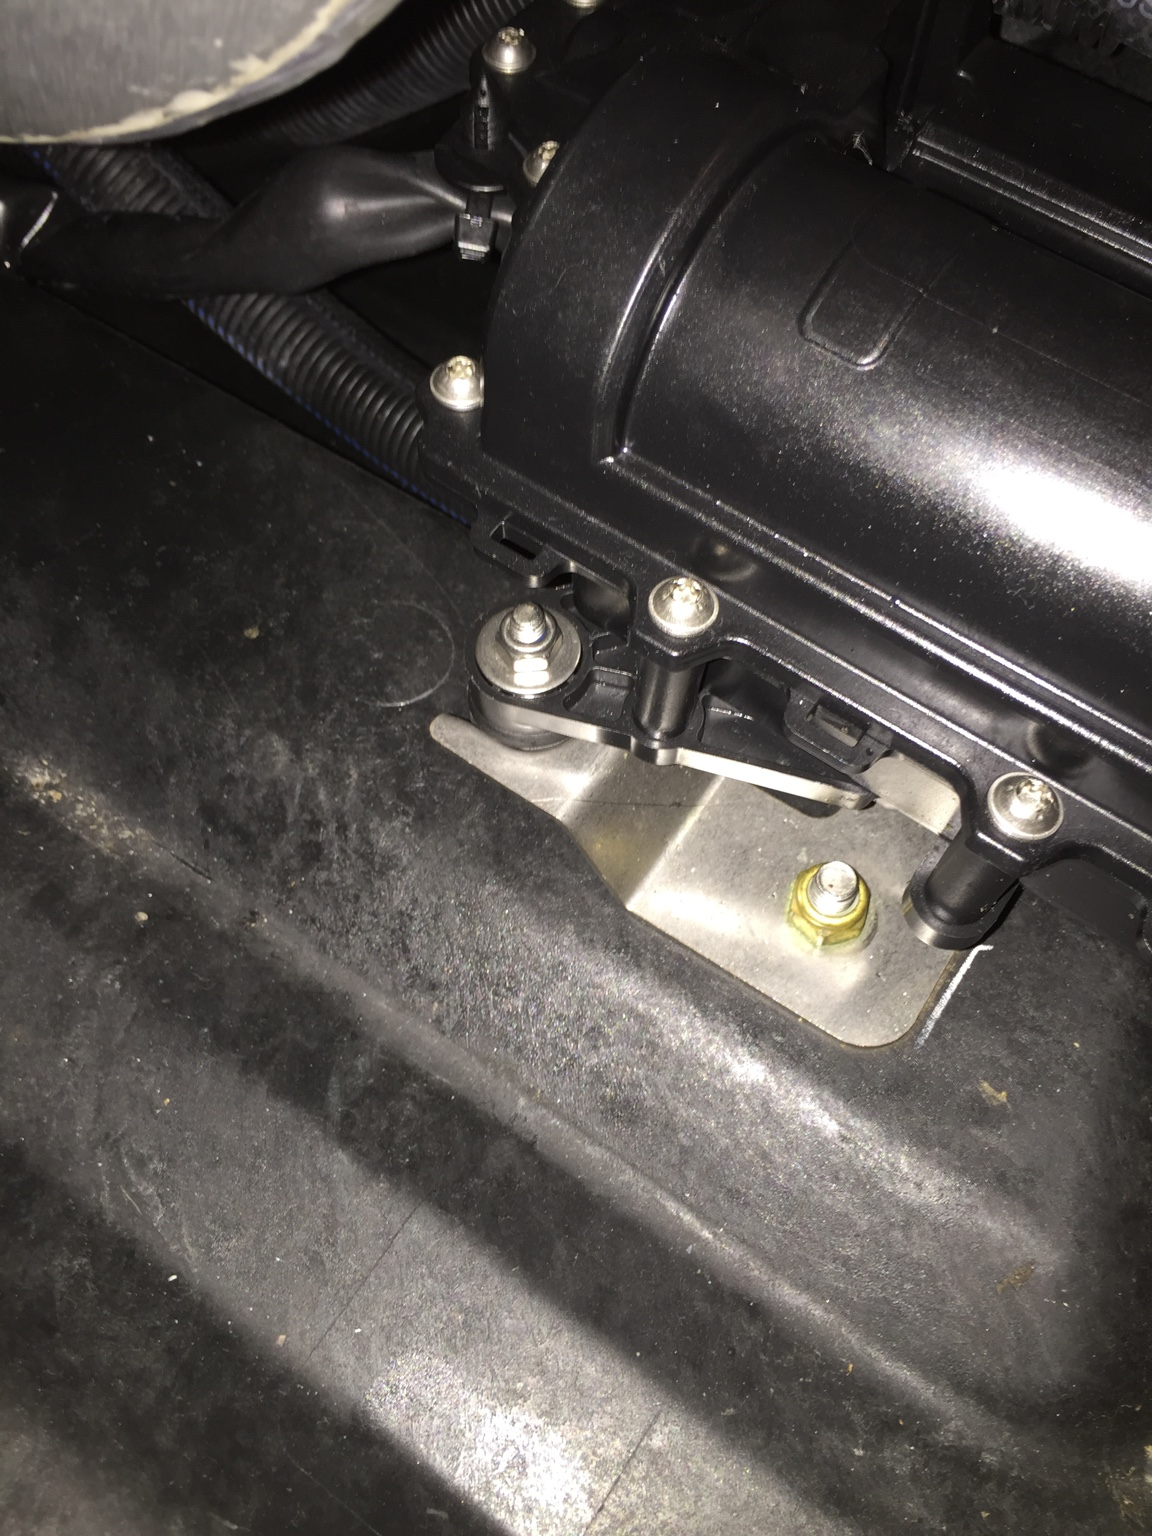 Installing intake grate on a iBR spark